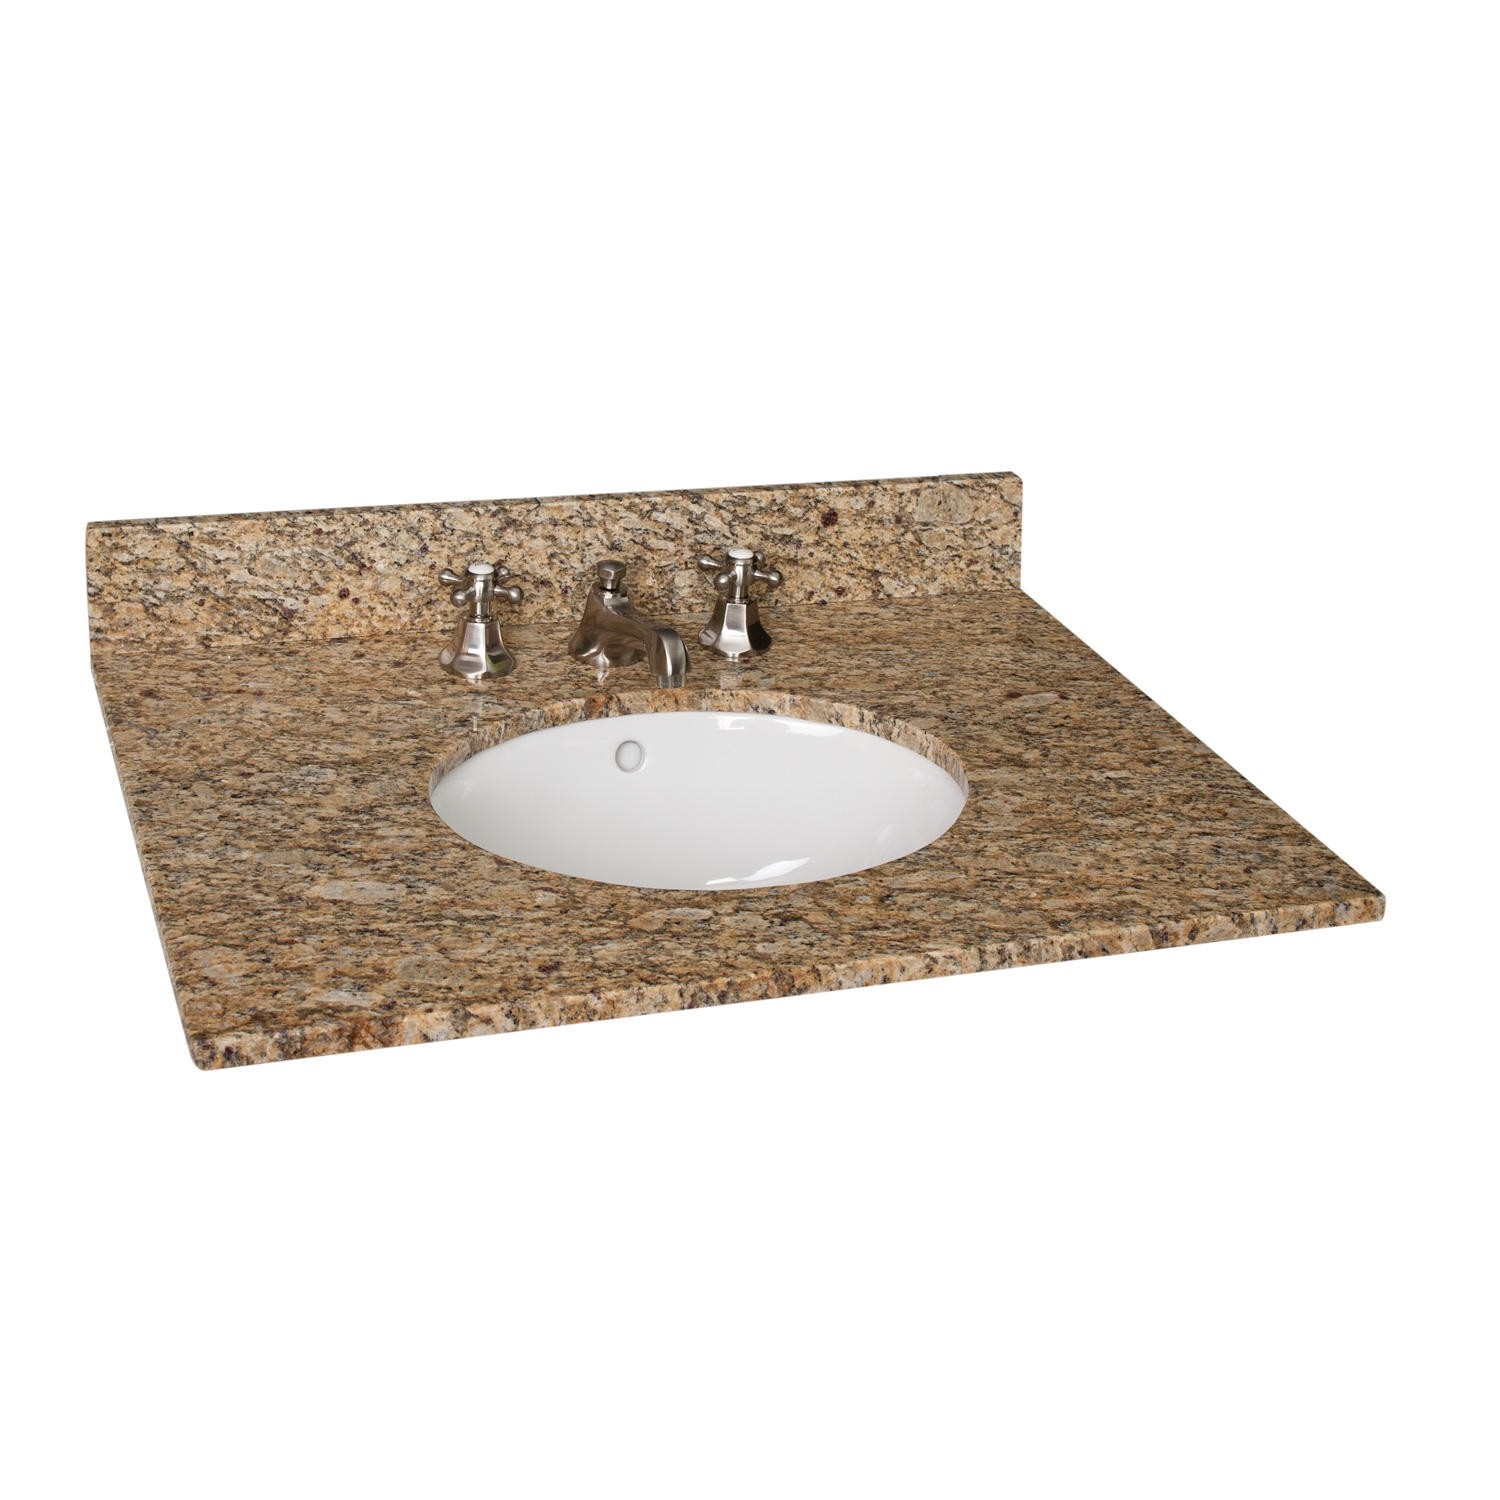 Ideas, undermount bath sink with faucet holes undermount bath sink with faucet holes 31 x 22 granite vanity top with undermount sink bathroom 1500 x 1500  .